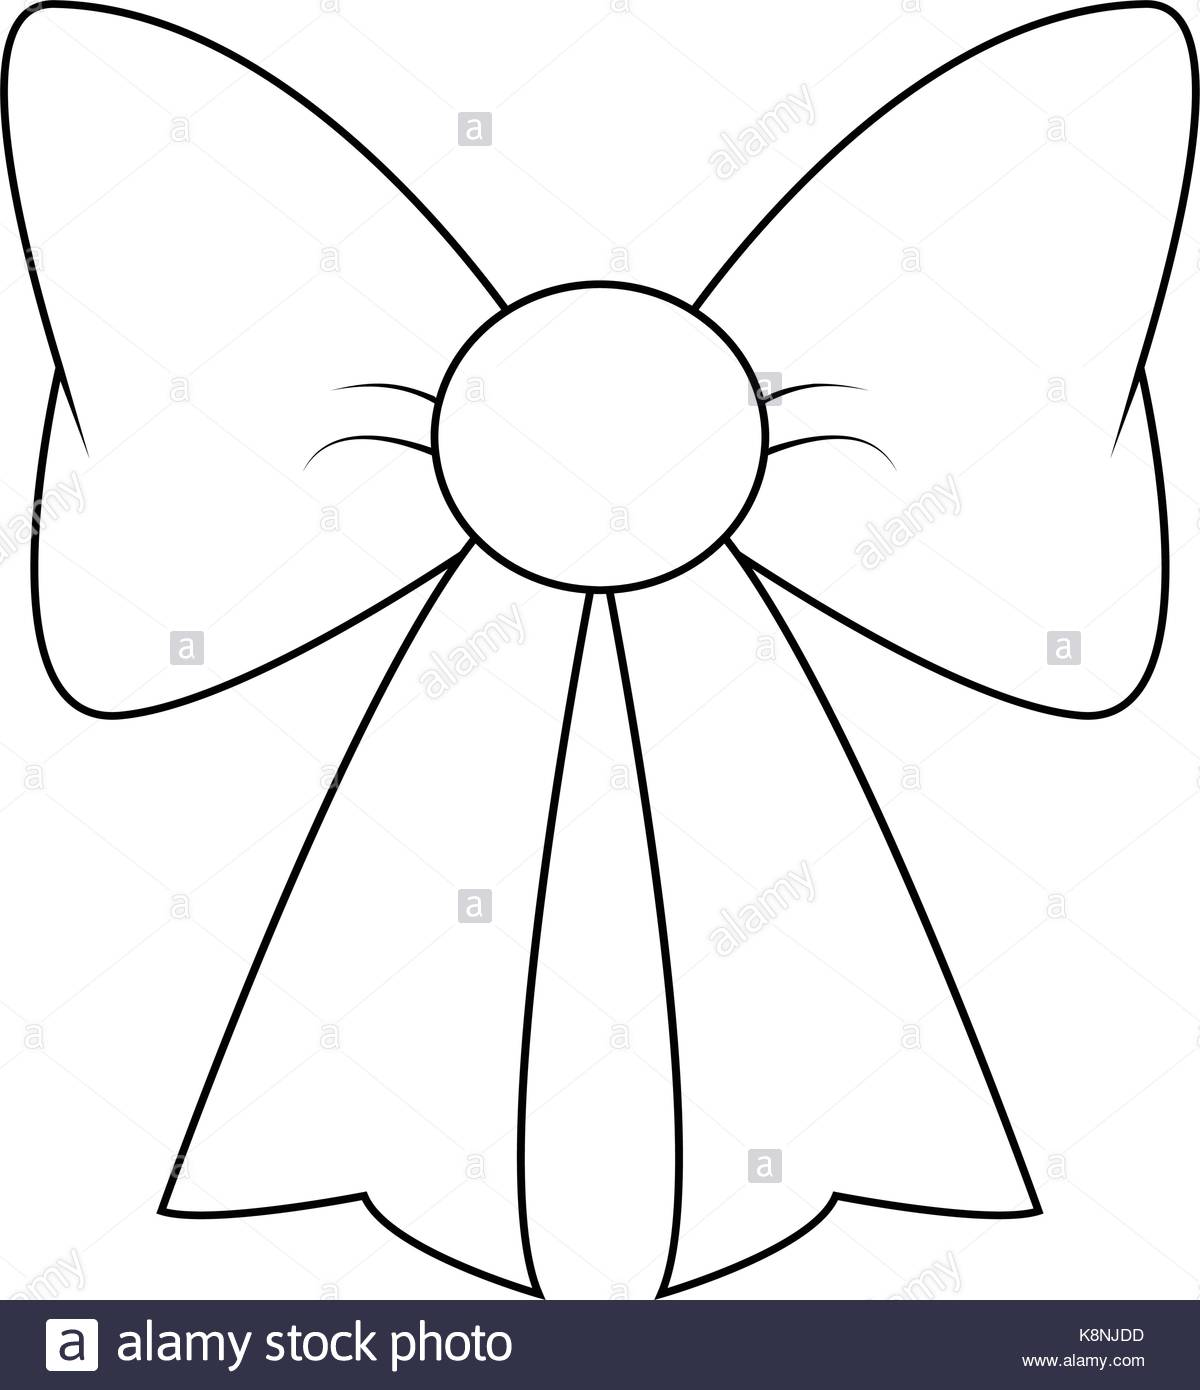 1200x1390 Ribbon Bow Silhouette For Christmas Present Symbol Design. Vector